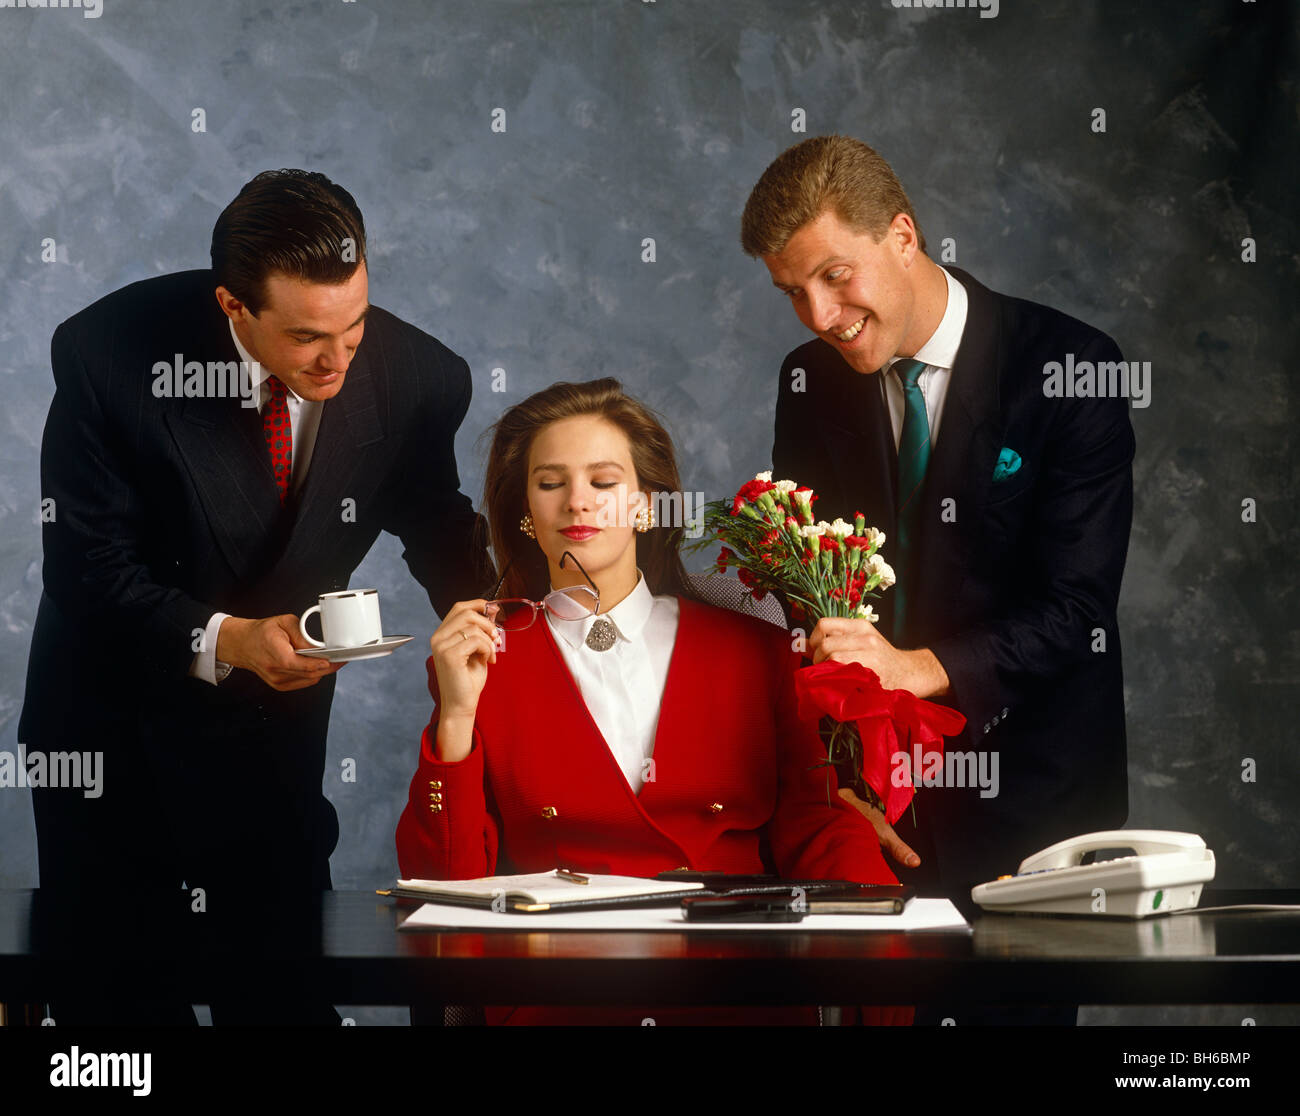 One woman and two men in office situation - Stock Image